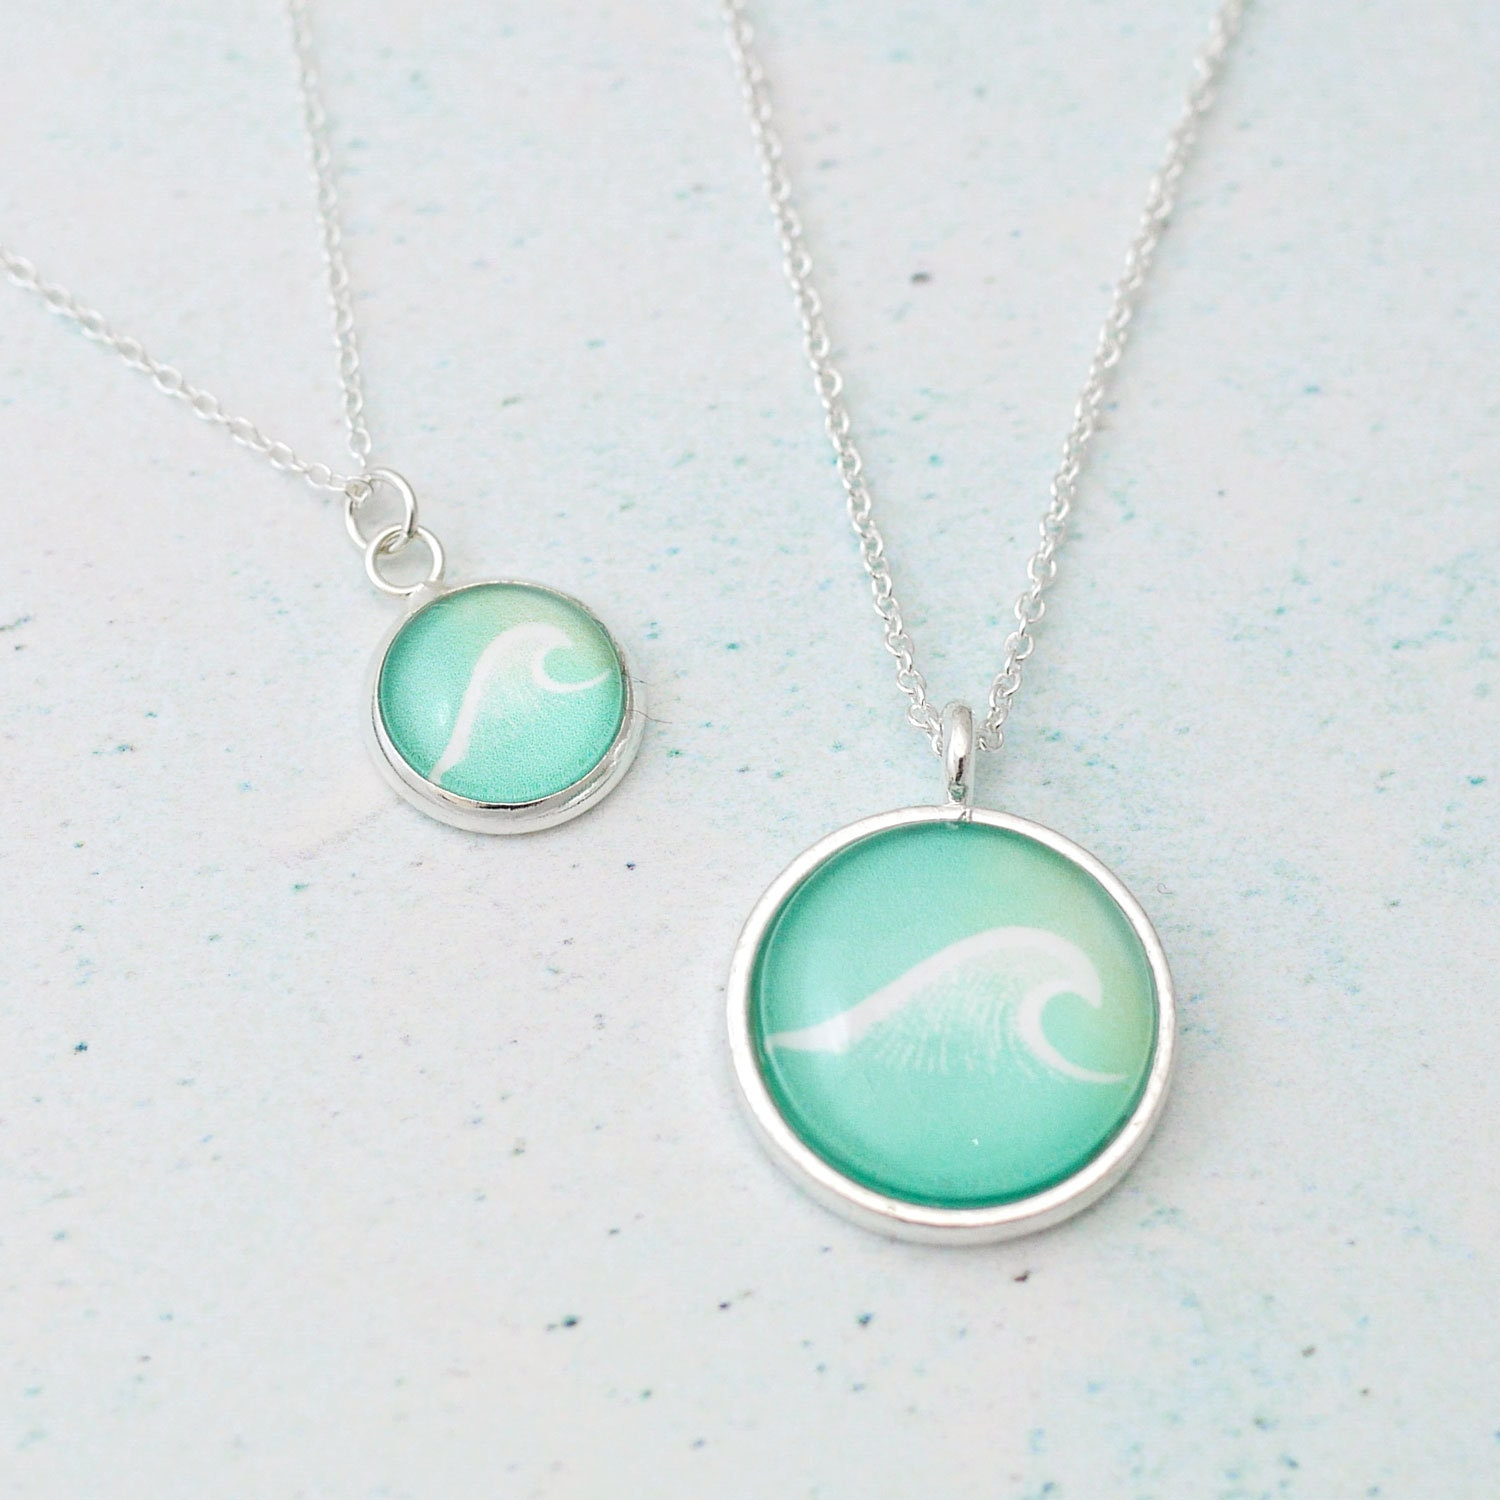 photo wave ocean the fullxfull il lover pendant sea gallery thalassophile jewelry listing a of